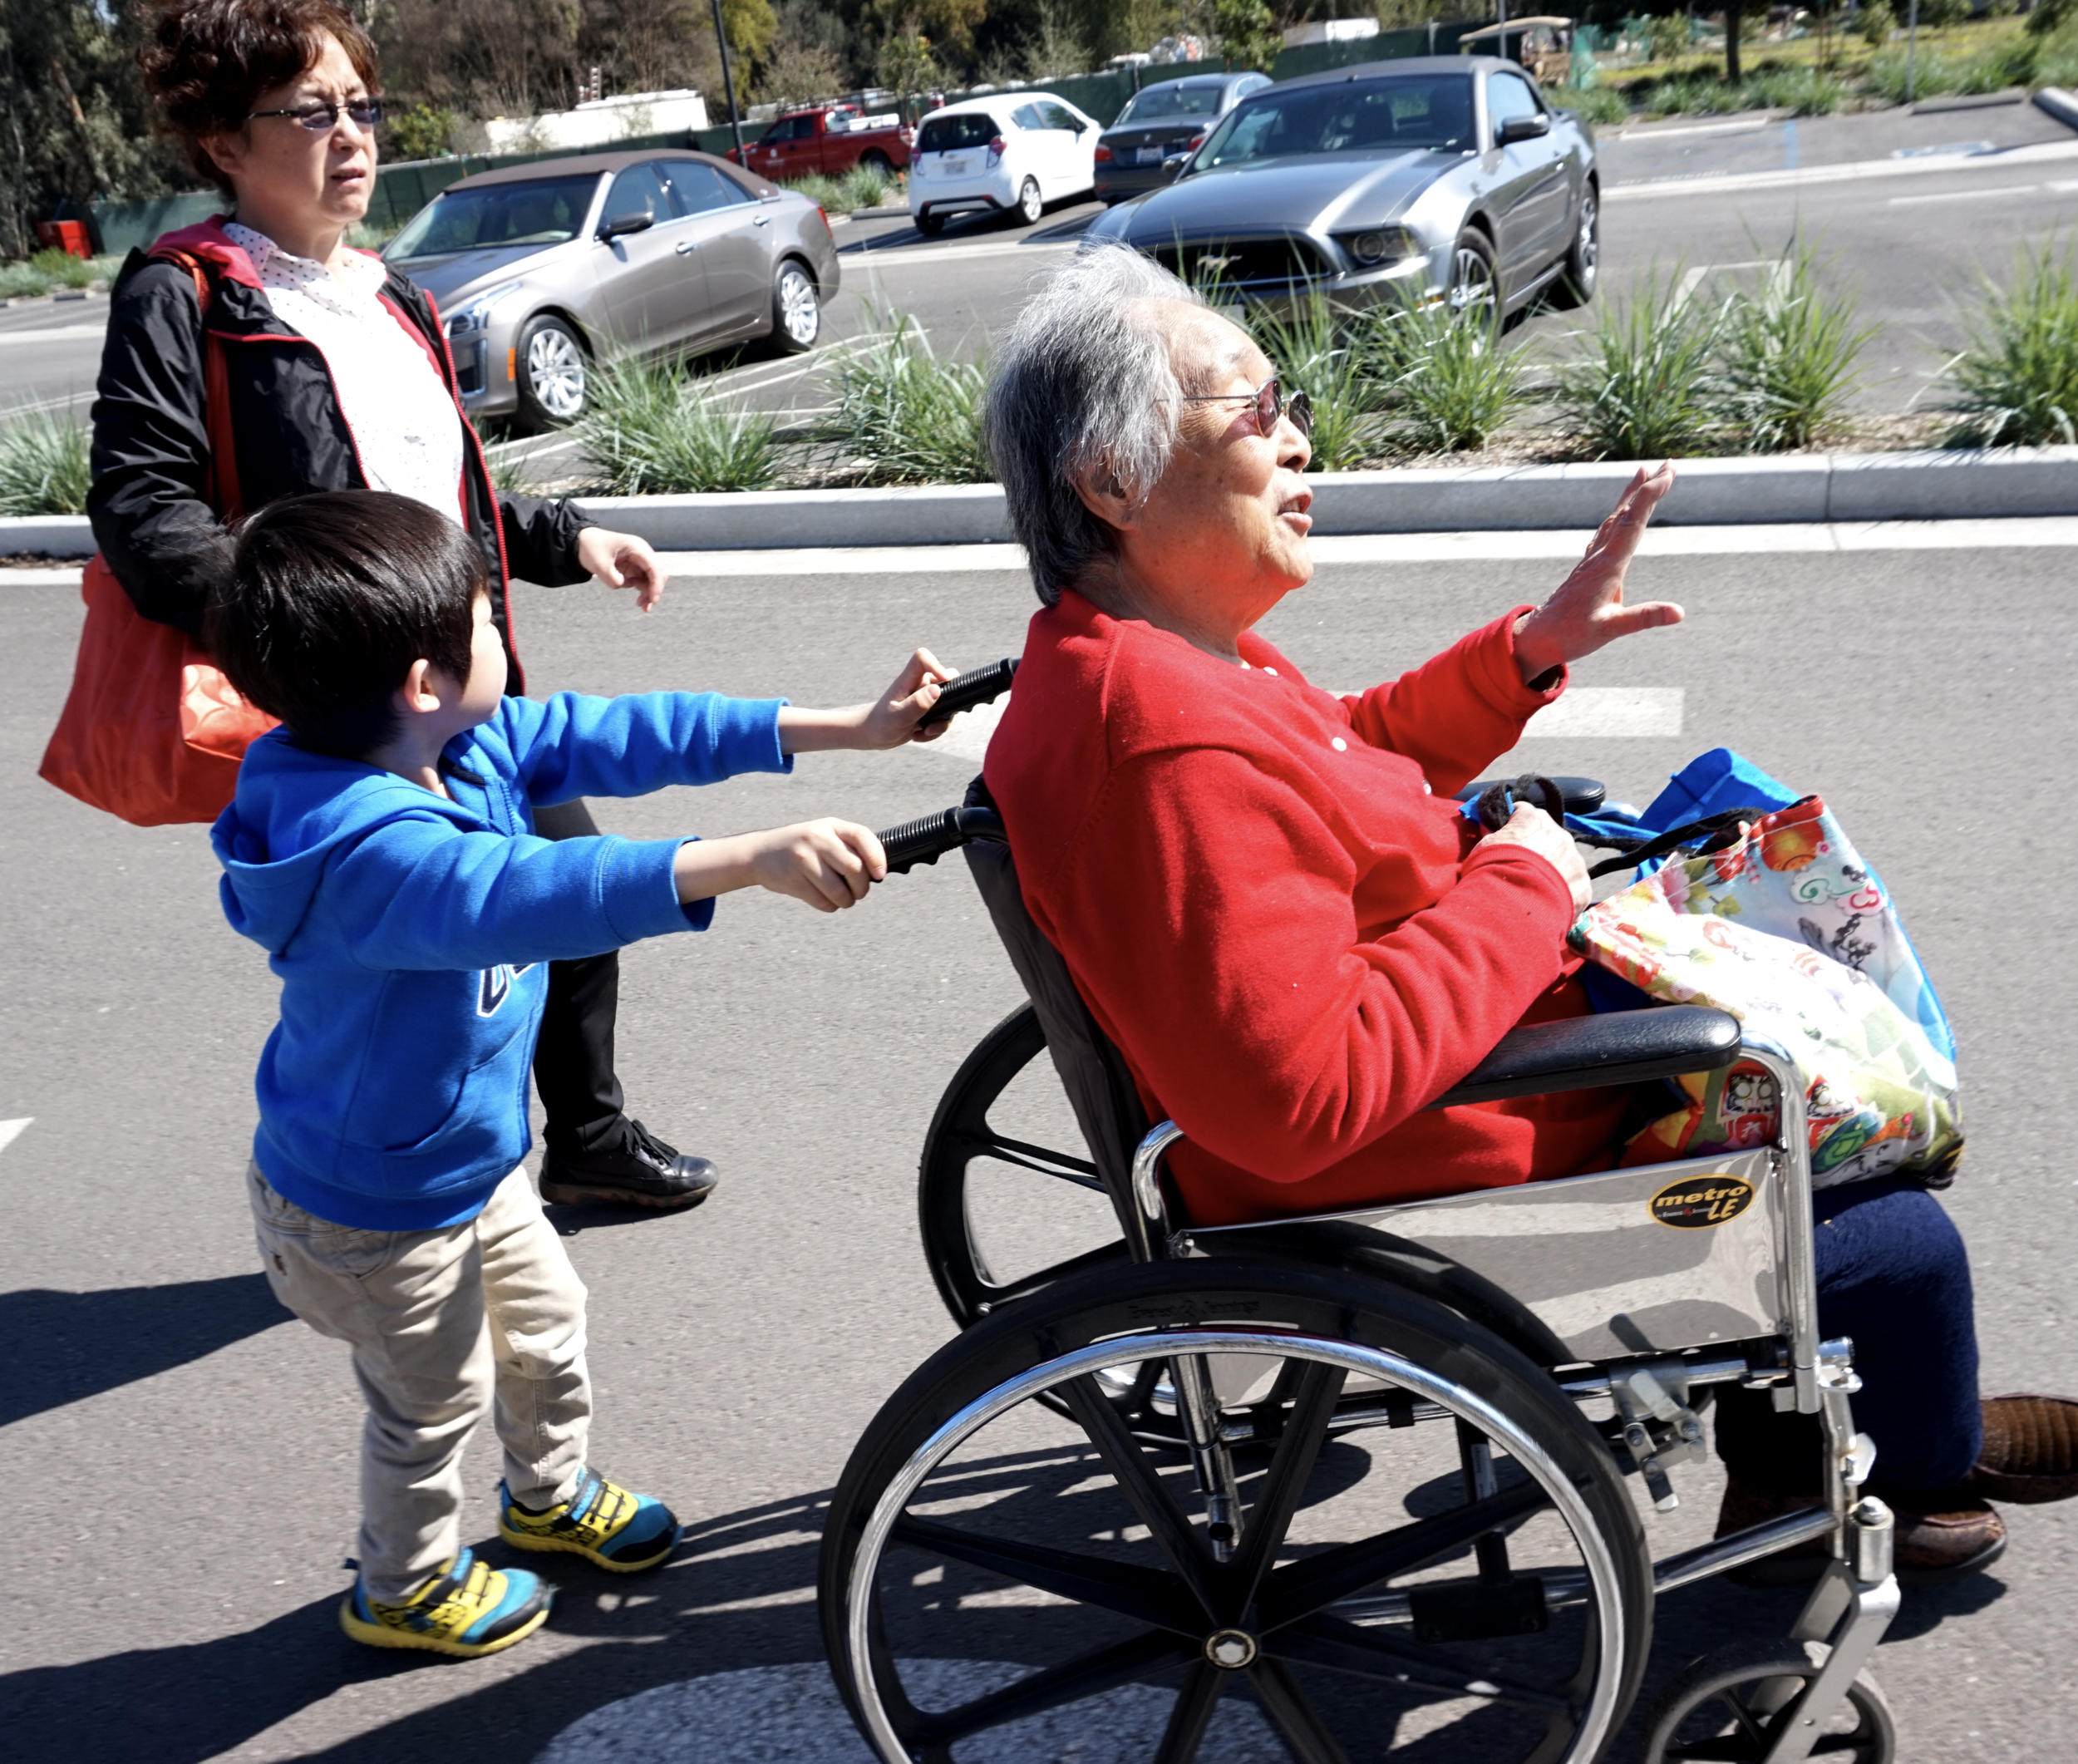 - User: My GrandmotherGrandma love traveling on day trips with family. However, even though we bought an electric wheelchair for her, she preferred her foldable standard wheelchair due to its ease of storage, and its ability to fold up into the trunk of my car.